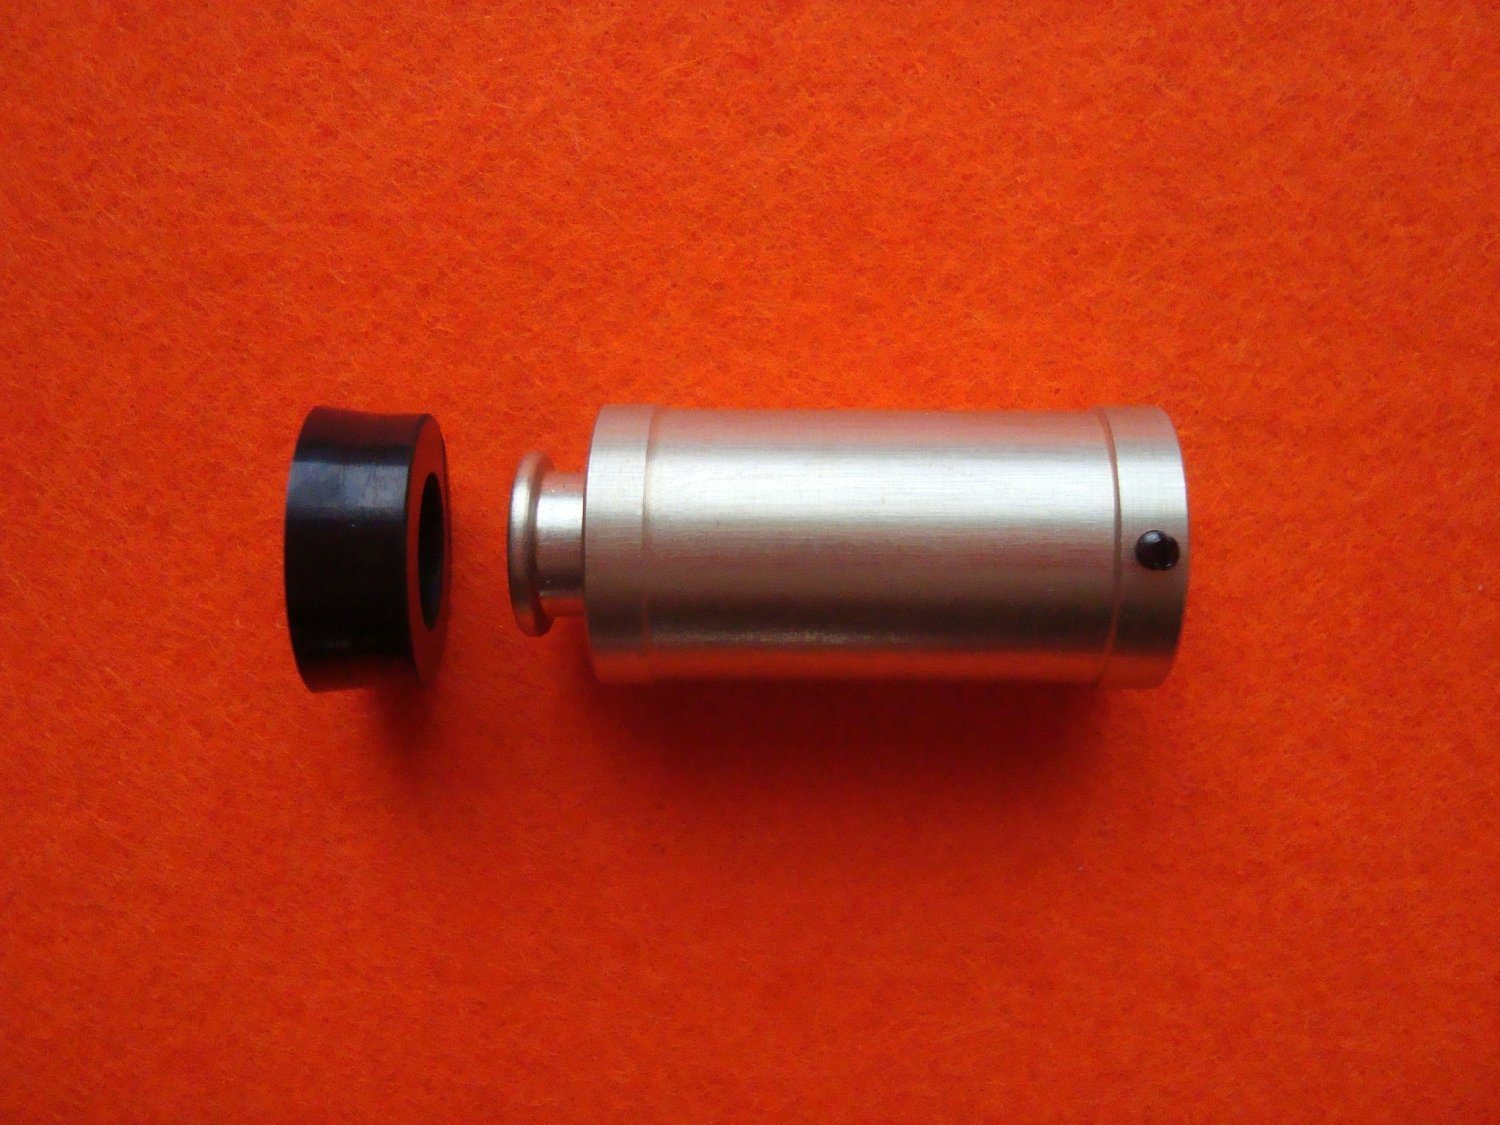 Piston seal izh-46, mp-46, mp-46m with screw tuning details in repair kit, spare parts made to order